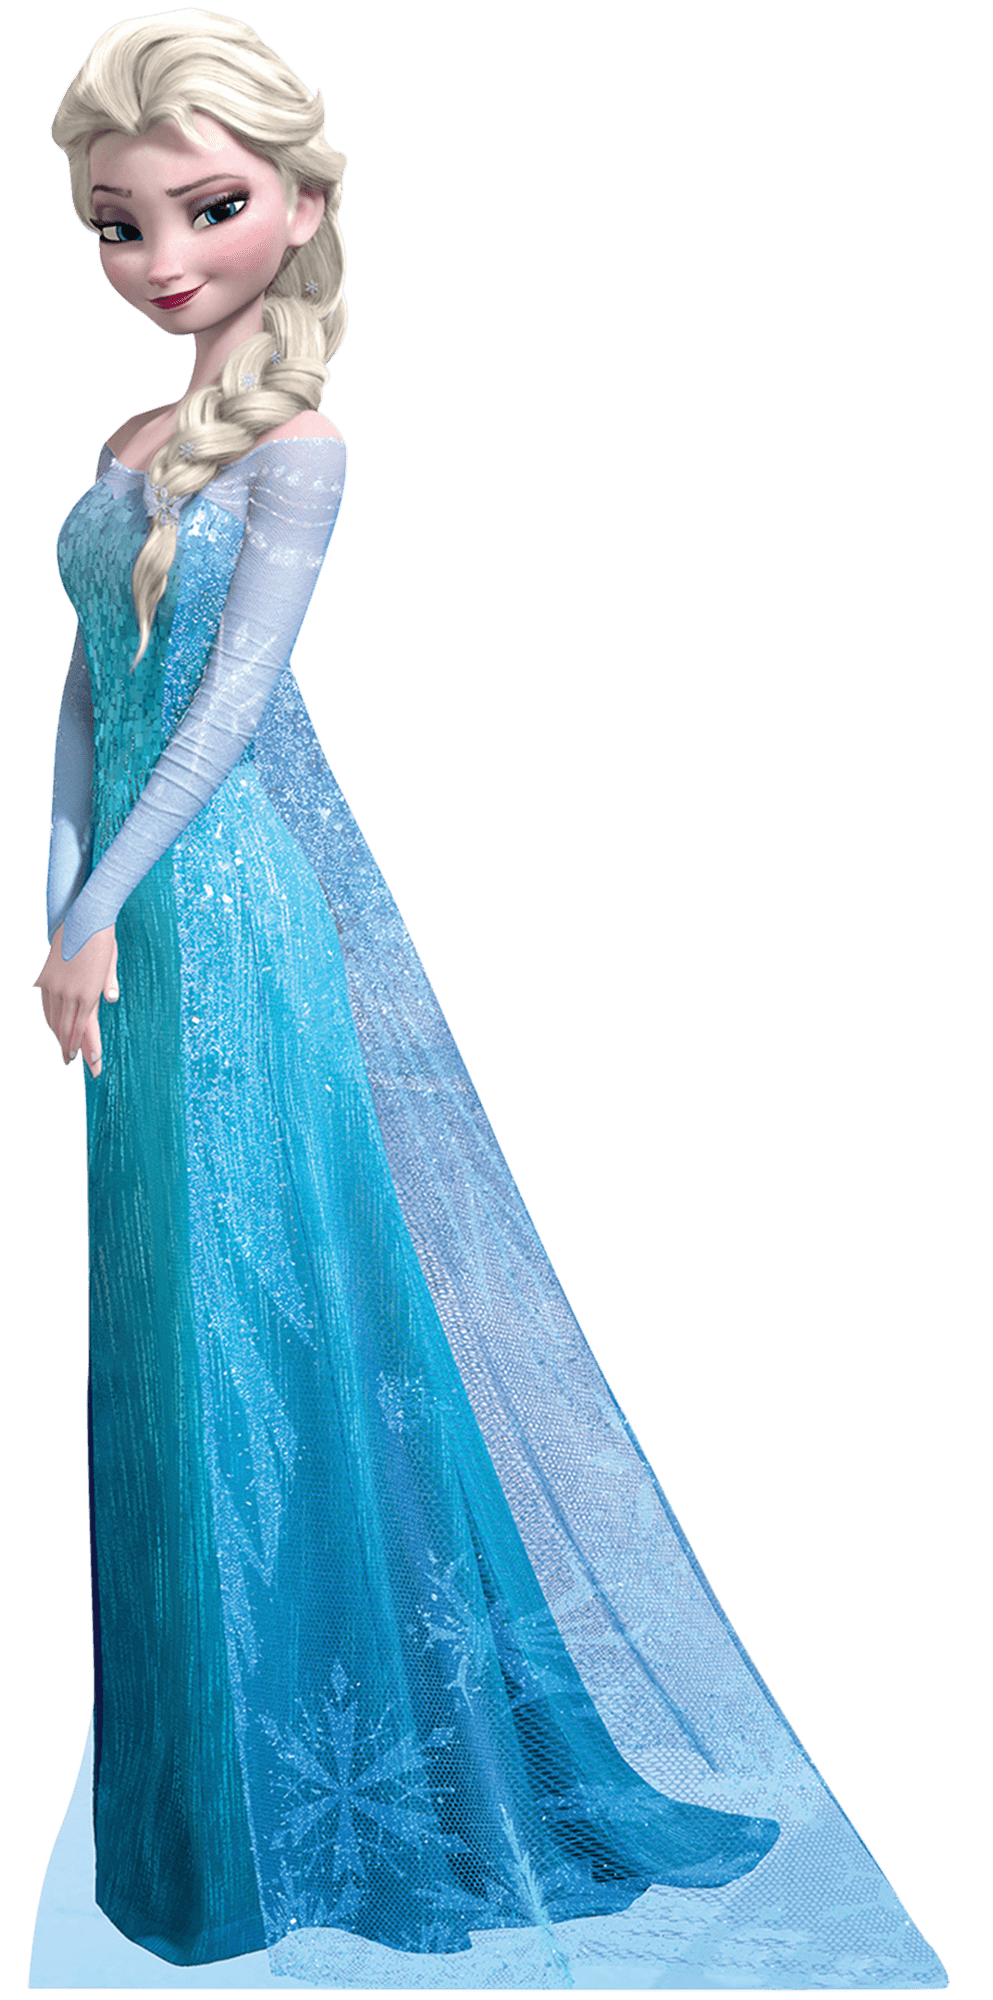 Frozen characters png. Character transparent stickpng